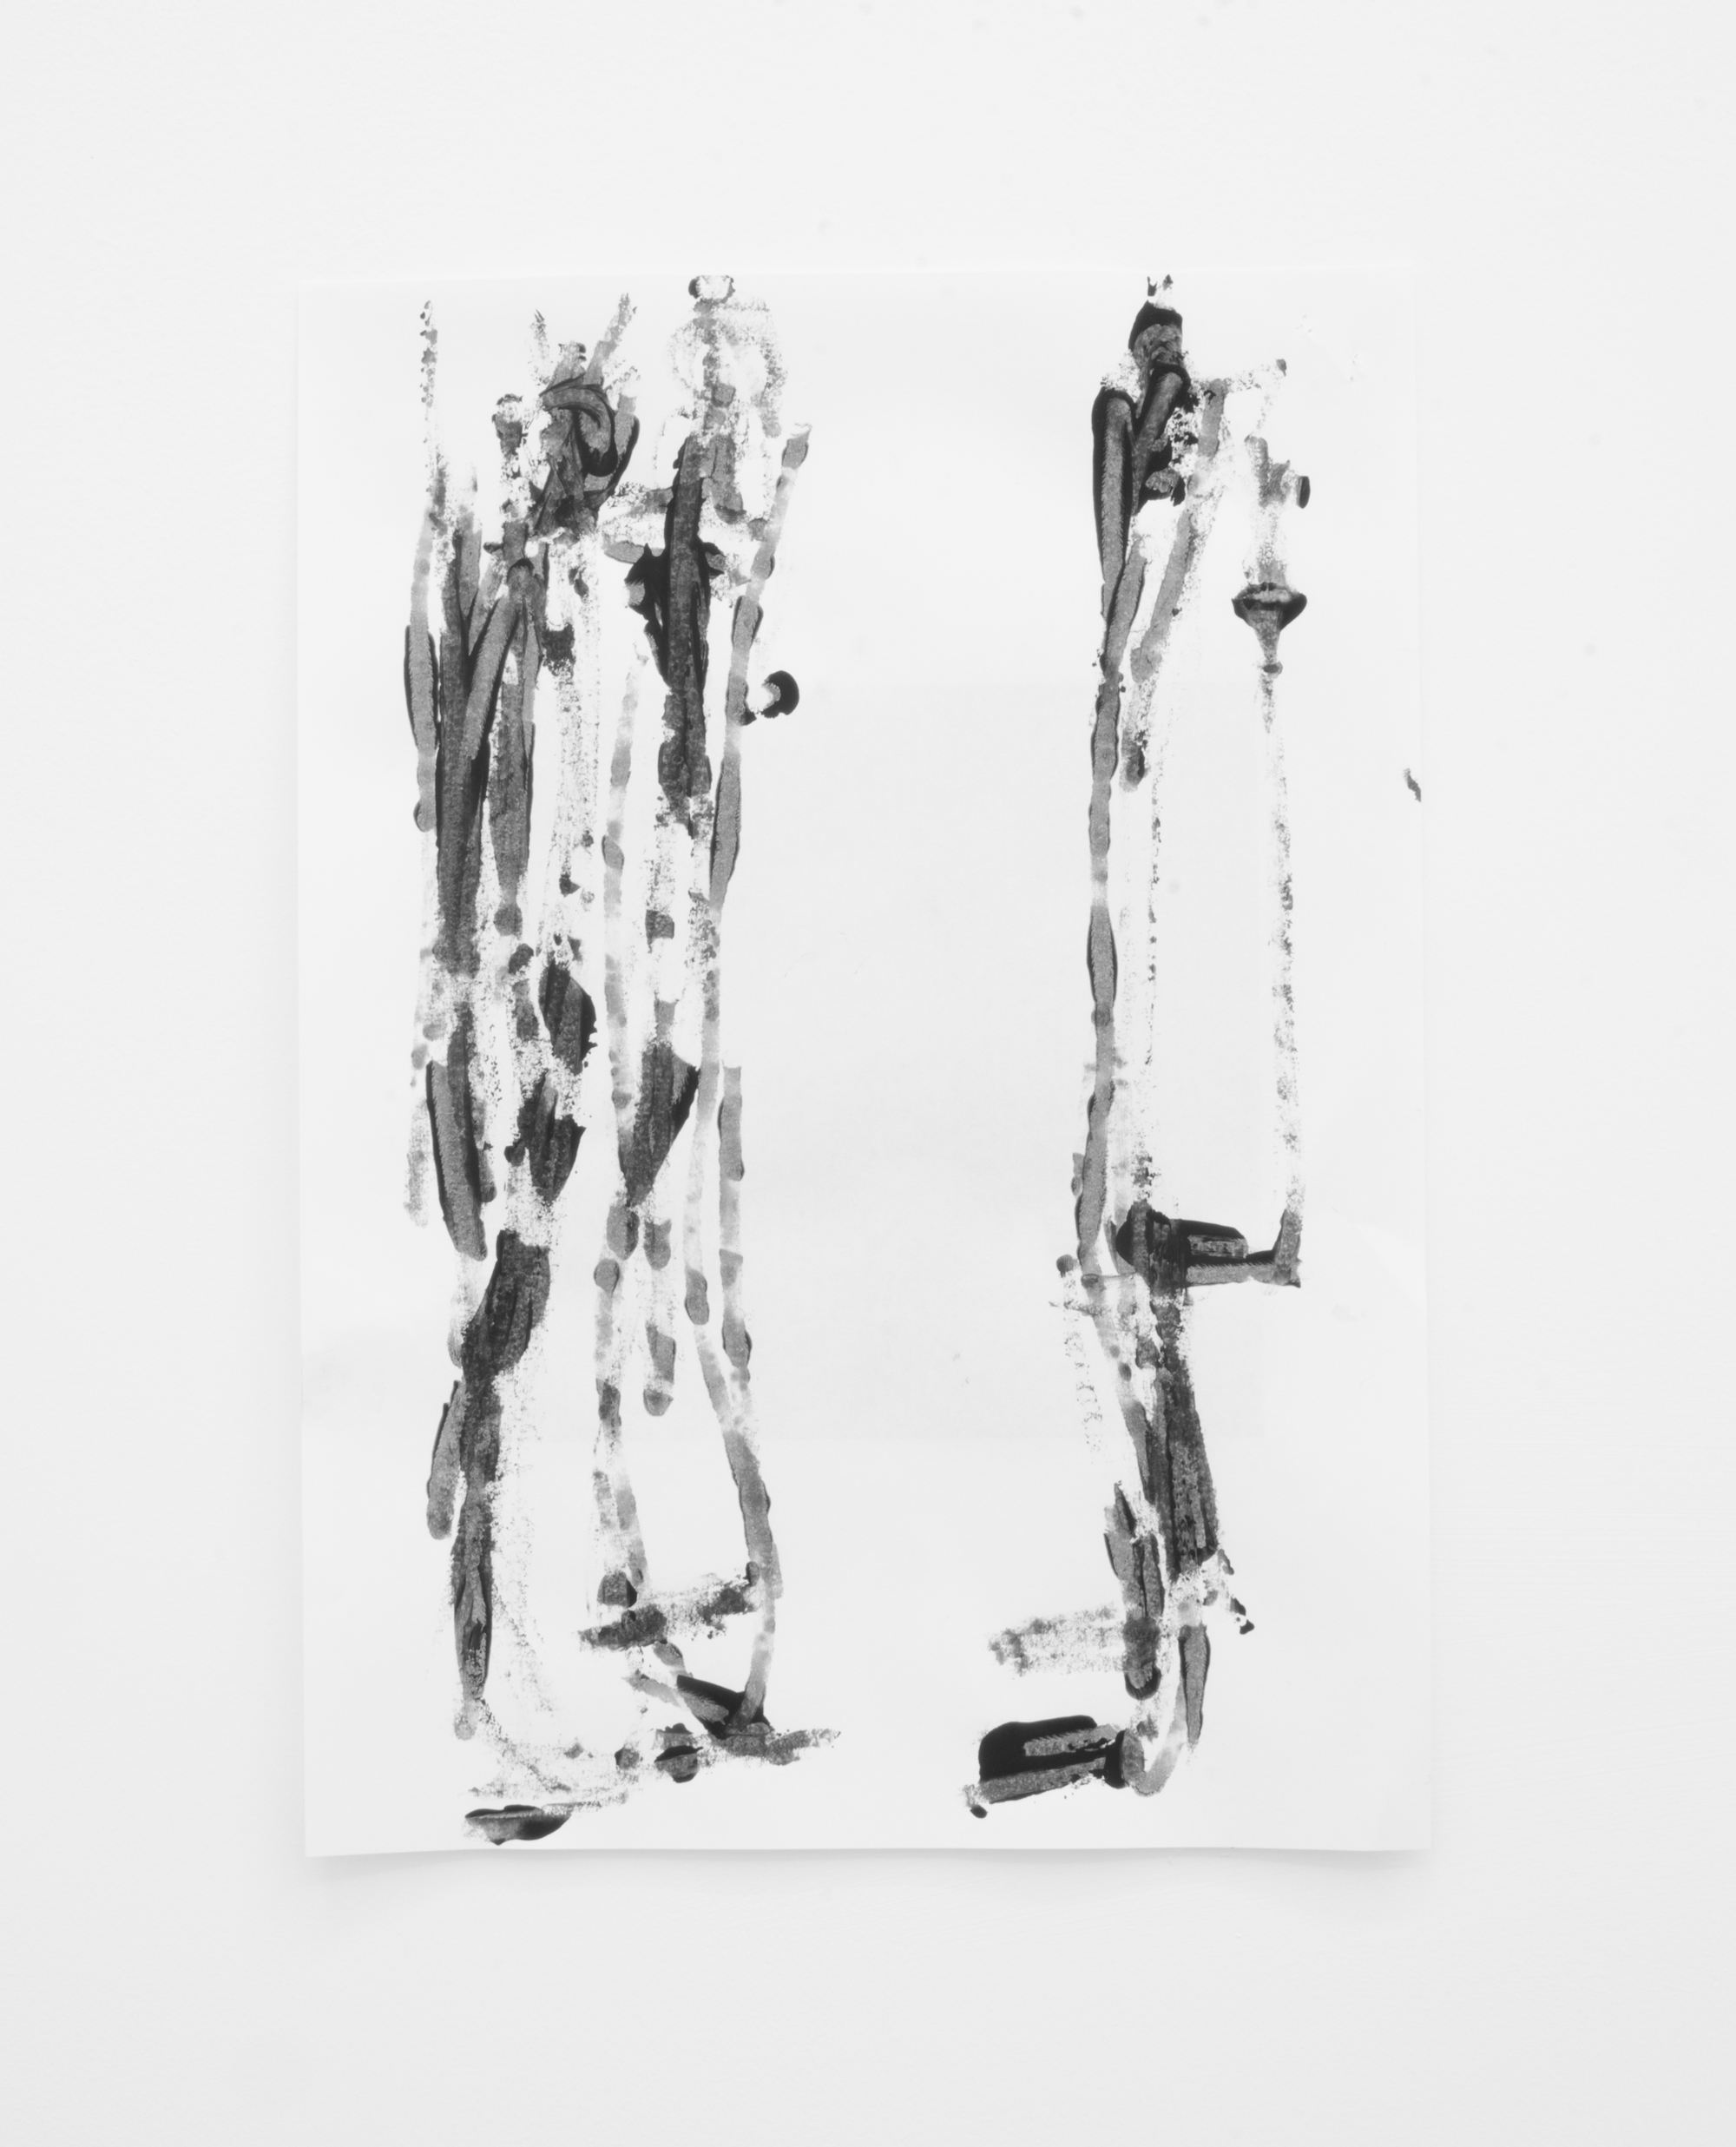 Deo-Drawing (Portrait 7)  2017 Printing ink on paper 29.7 x 21 cm